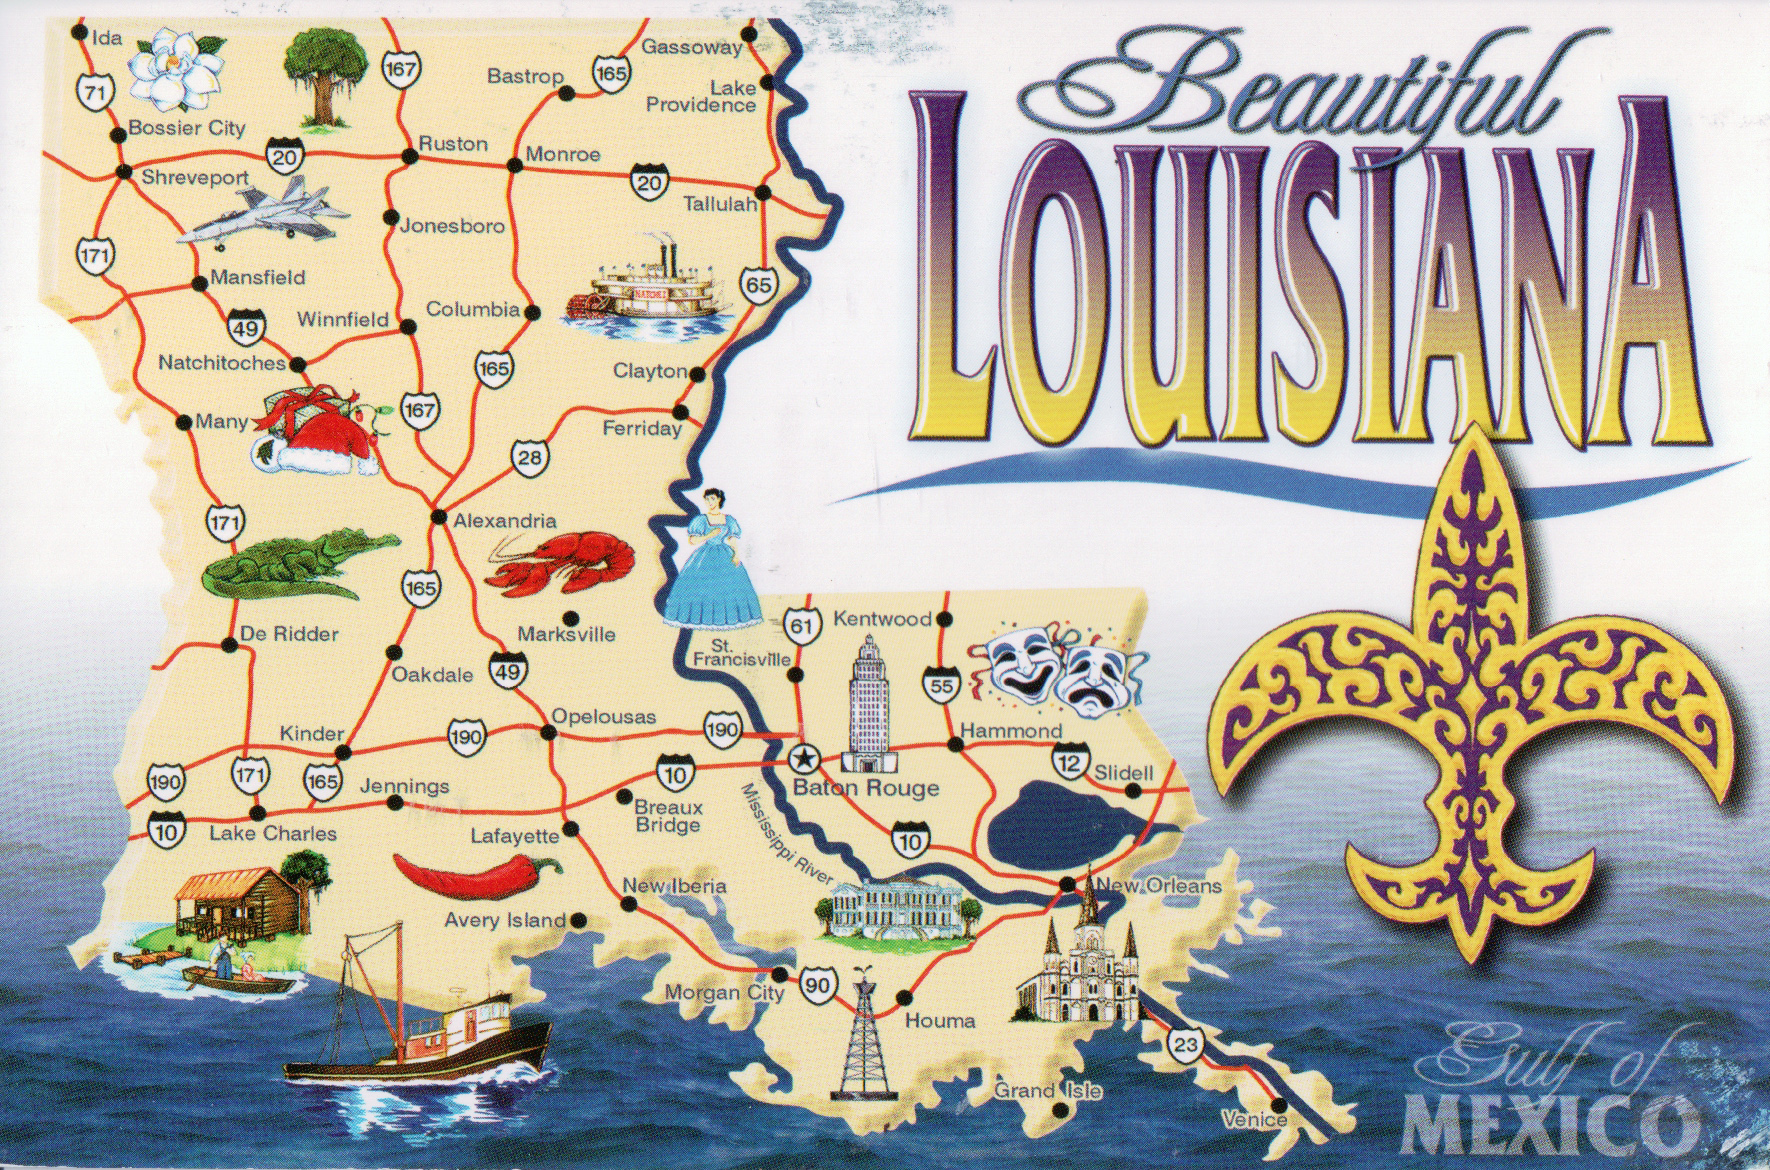 Louisiana Tourism Map MAP - Loisiana map